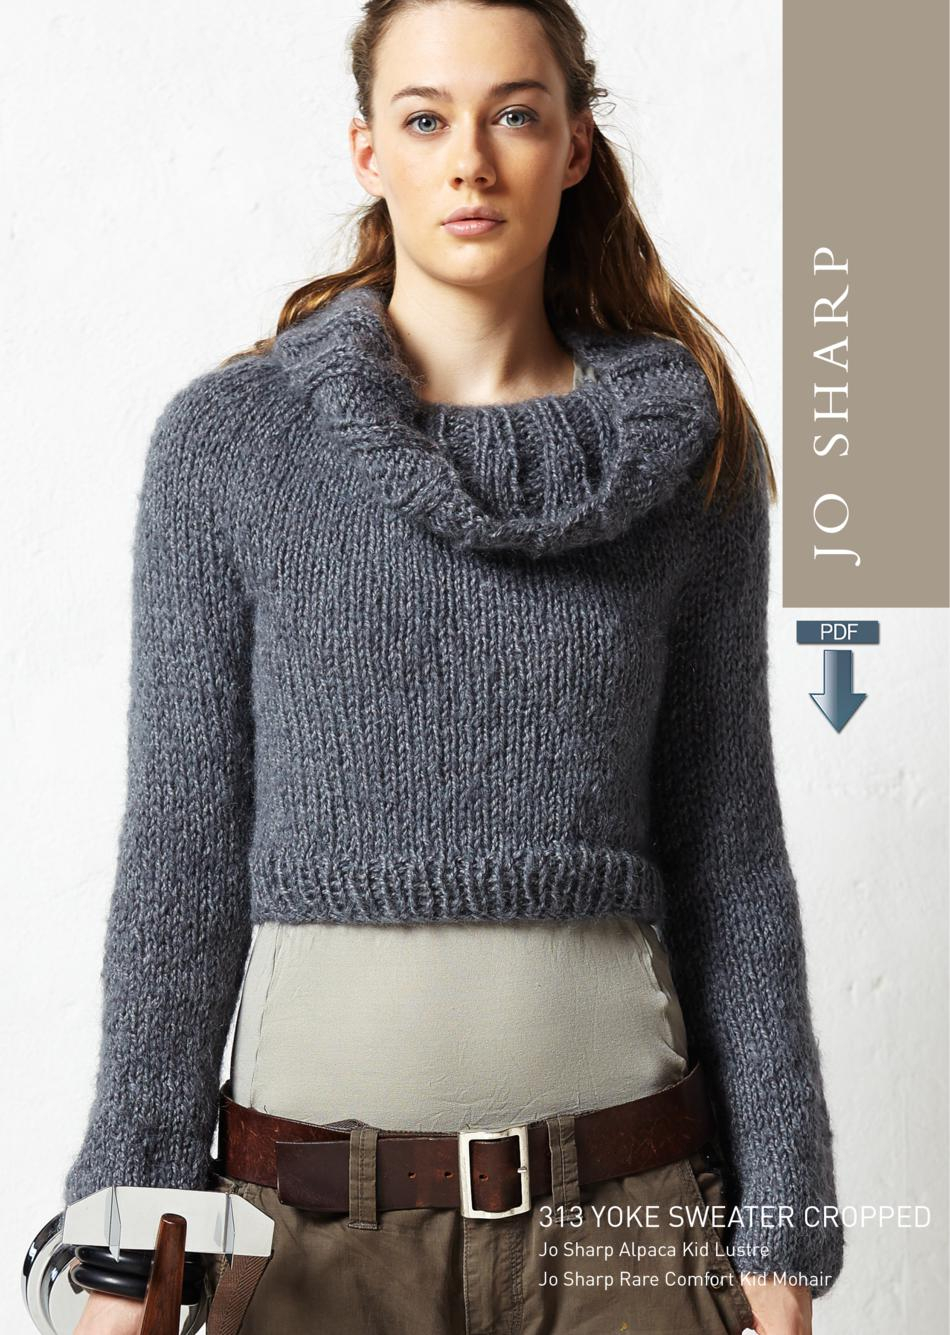 Yoke Knitting Pattern Jo Sharp Cropped Yoke Cowl Sweater Pattern Download Knitting Pattern